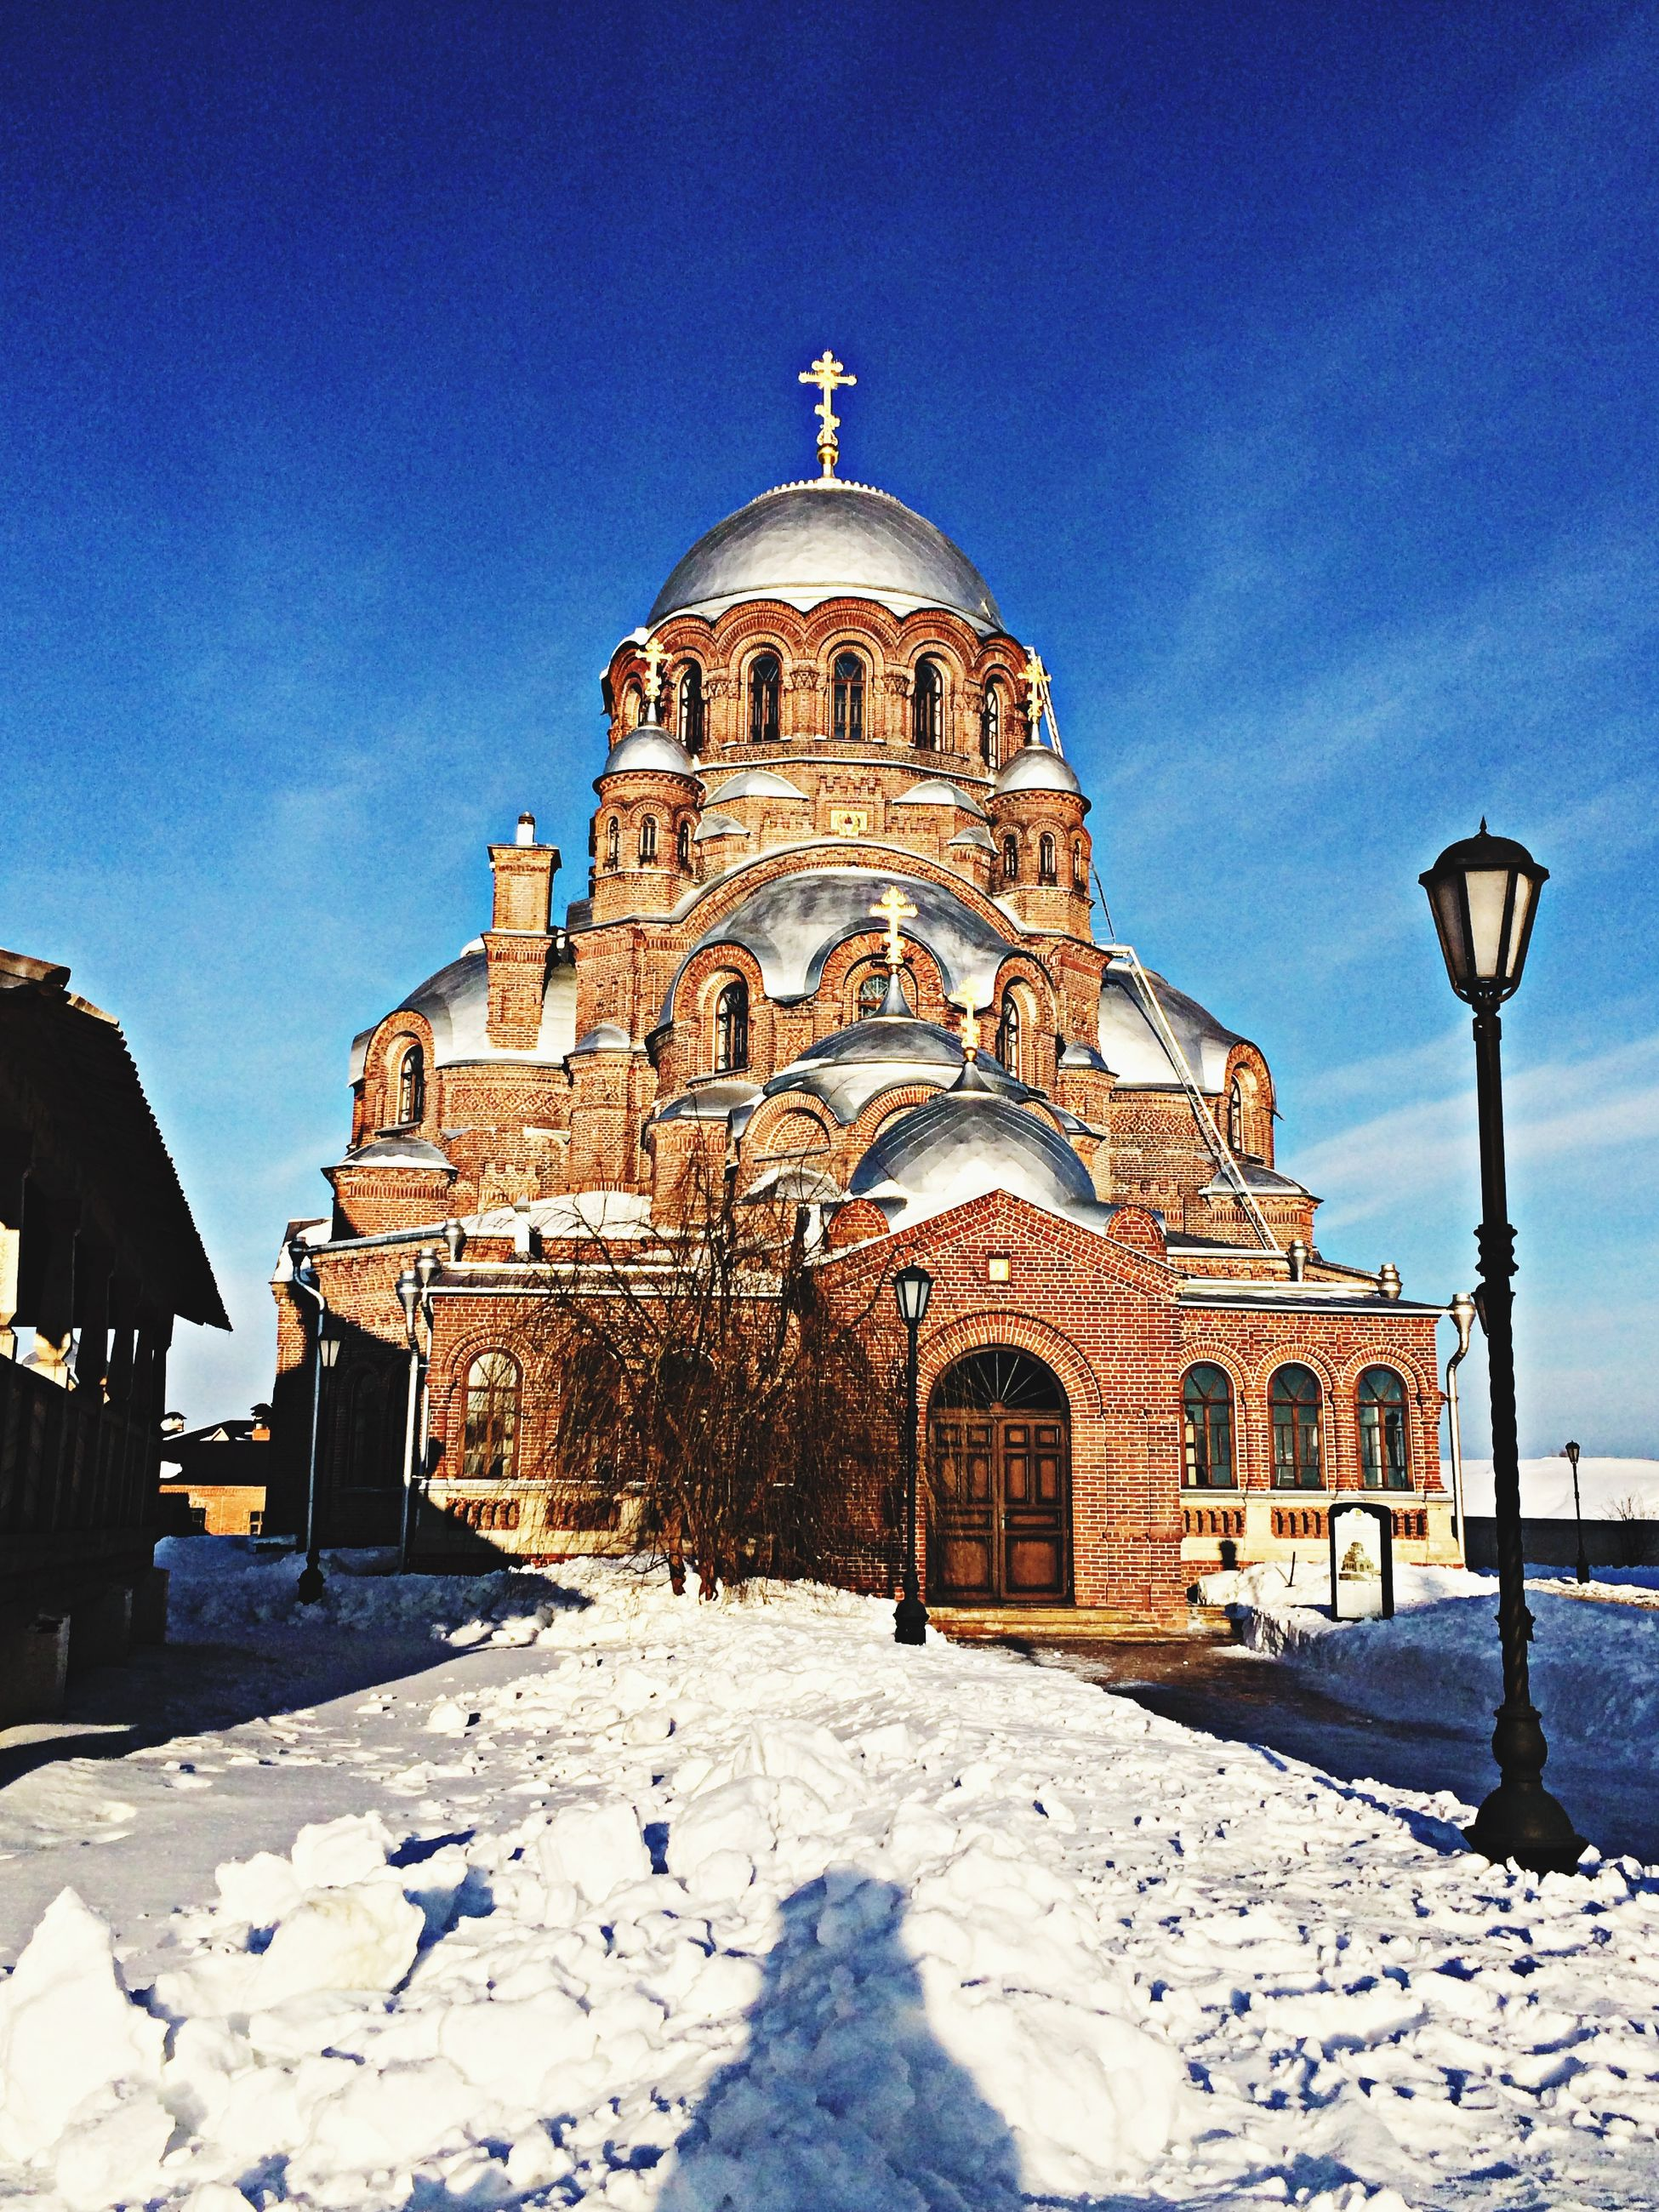 building exterior, architecture, place of worship, built structure, religion, spirituality, church, blue, dome, sky, cathedral, facade, cross, clear sky, travel destinations, famous place, snow, incidental people